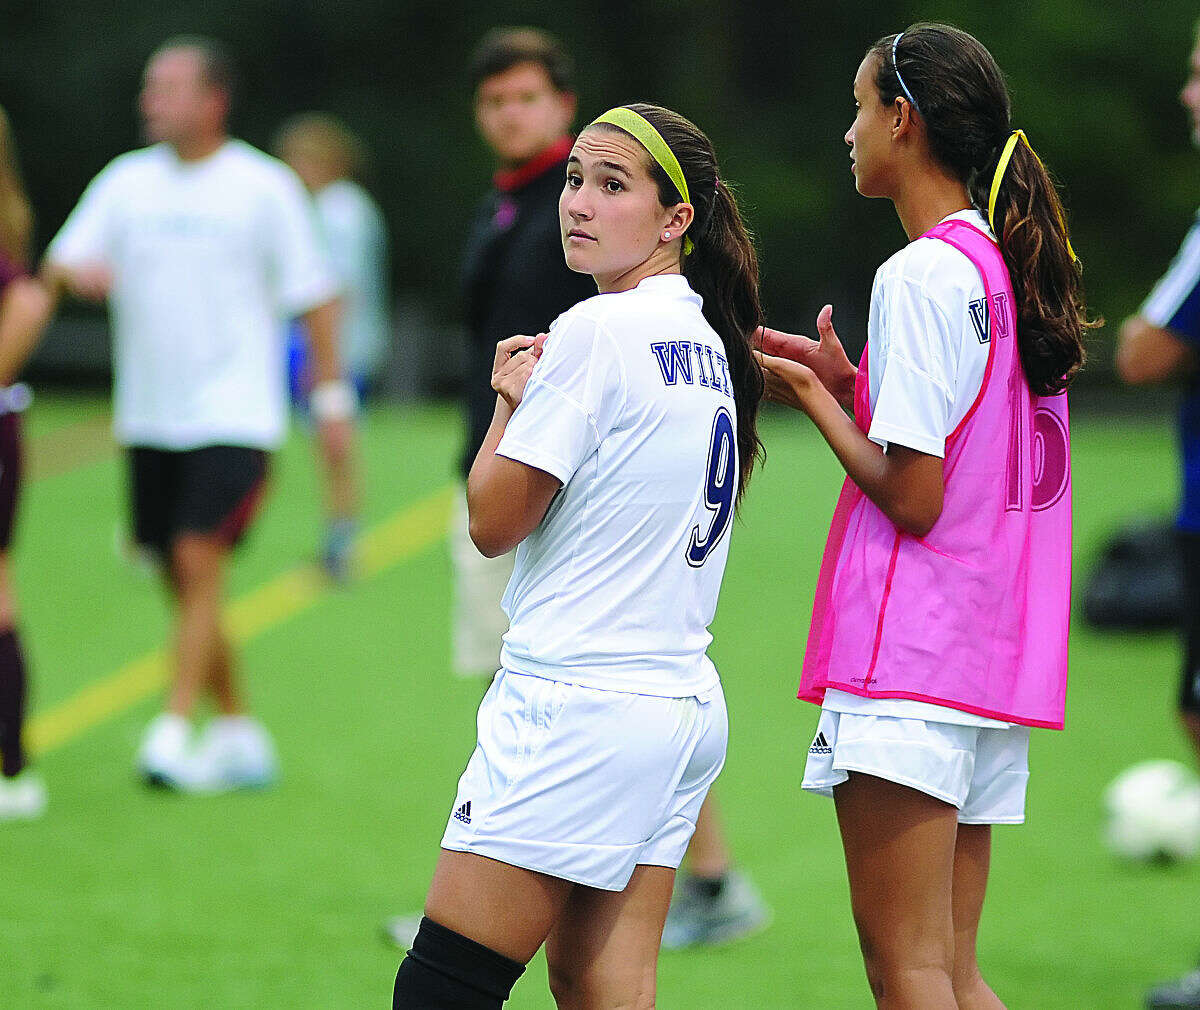 File photo by John nash - Former Wilton High soccer standout Jayne Maccio looks toward the clock as time ticks down during a 2-2 tie with St. Joseph last fall at Kristine Lilly Field in Wilton. Despite missing her junior and senior years due to knee injuries, Maccio has taken her talents to the Division 1 soccer tanks this fall.